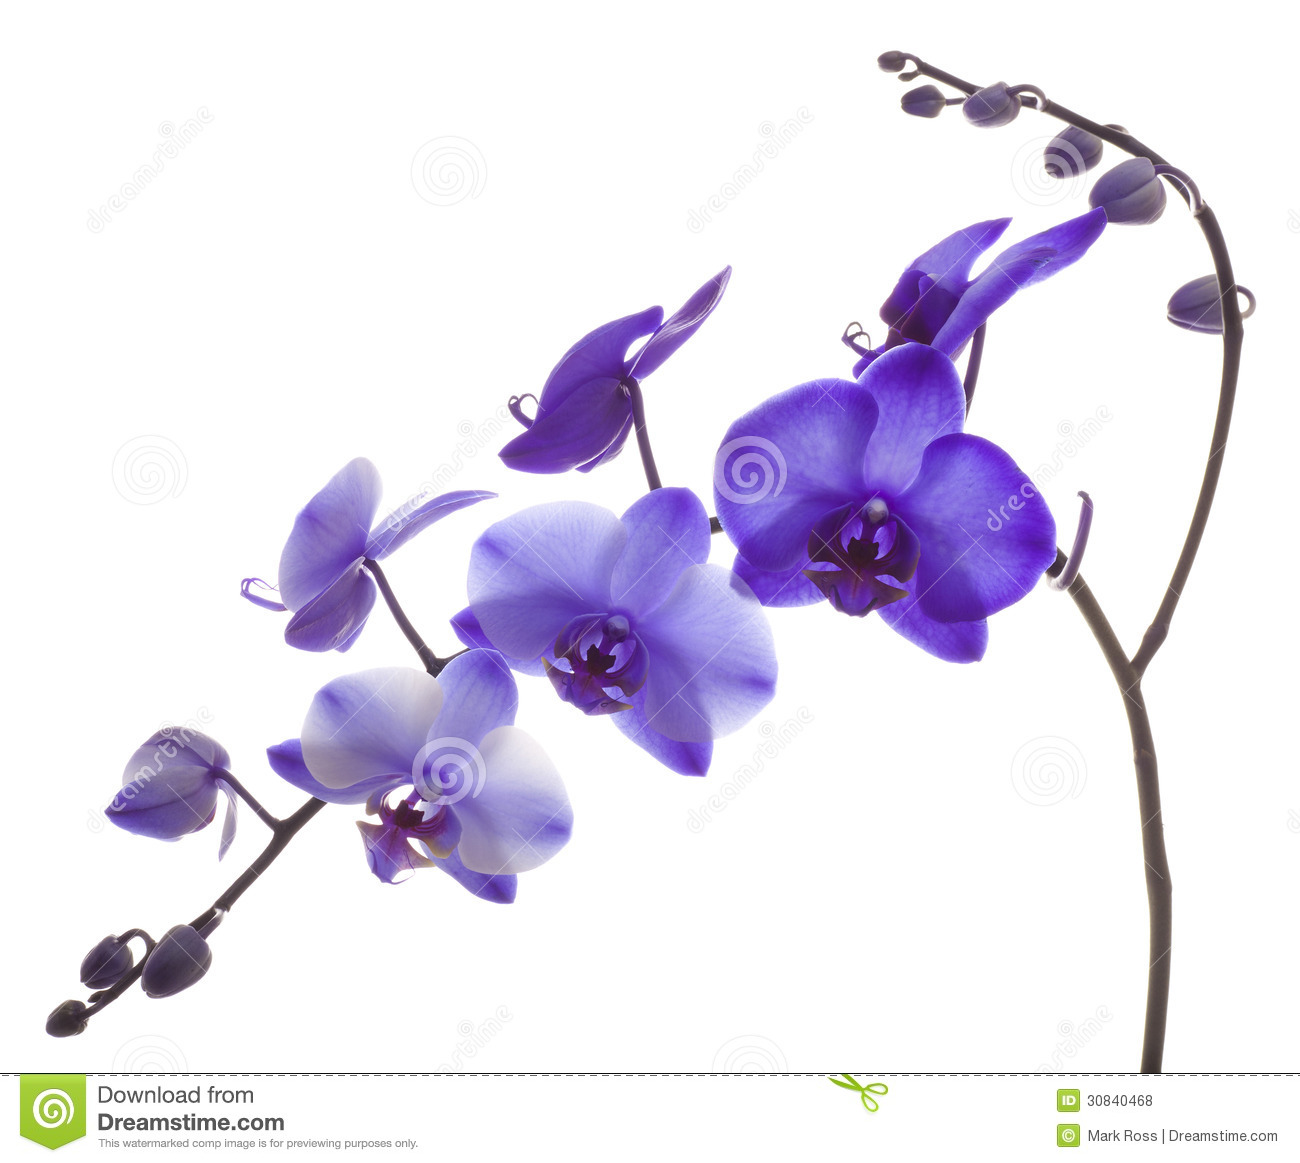 Purple Orchid Royalty Free Stock Photos - Image: 30840468